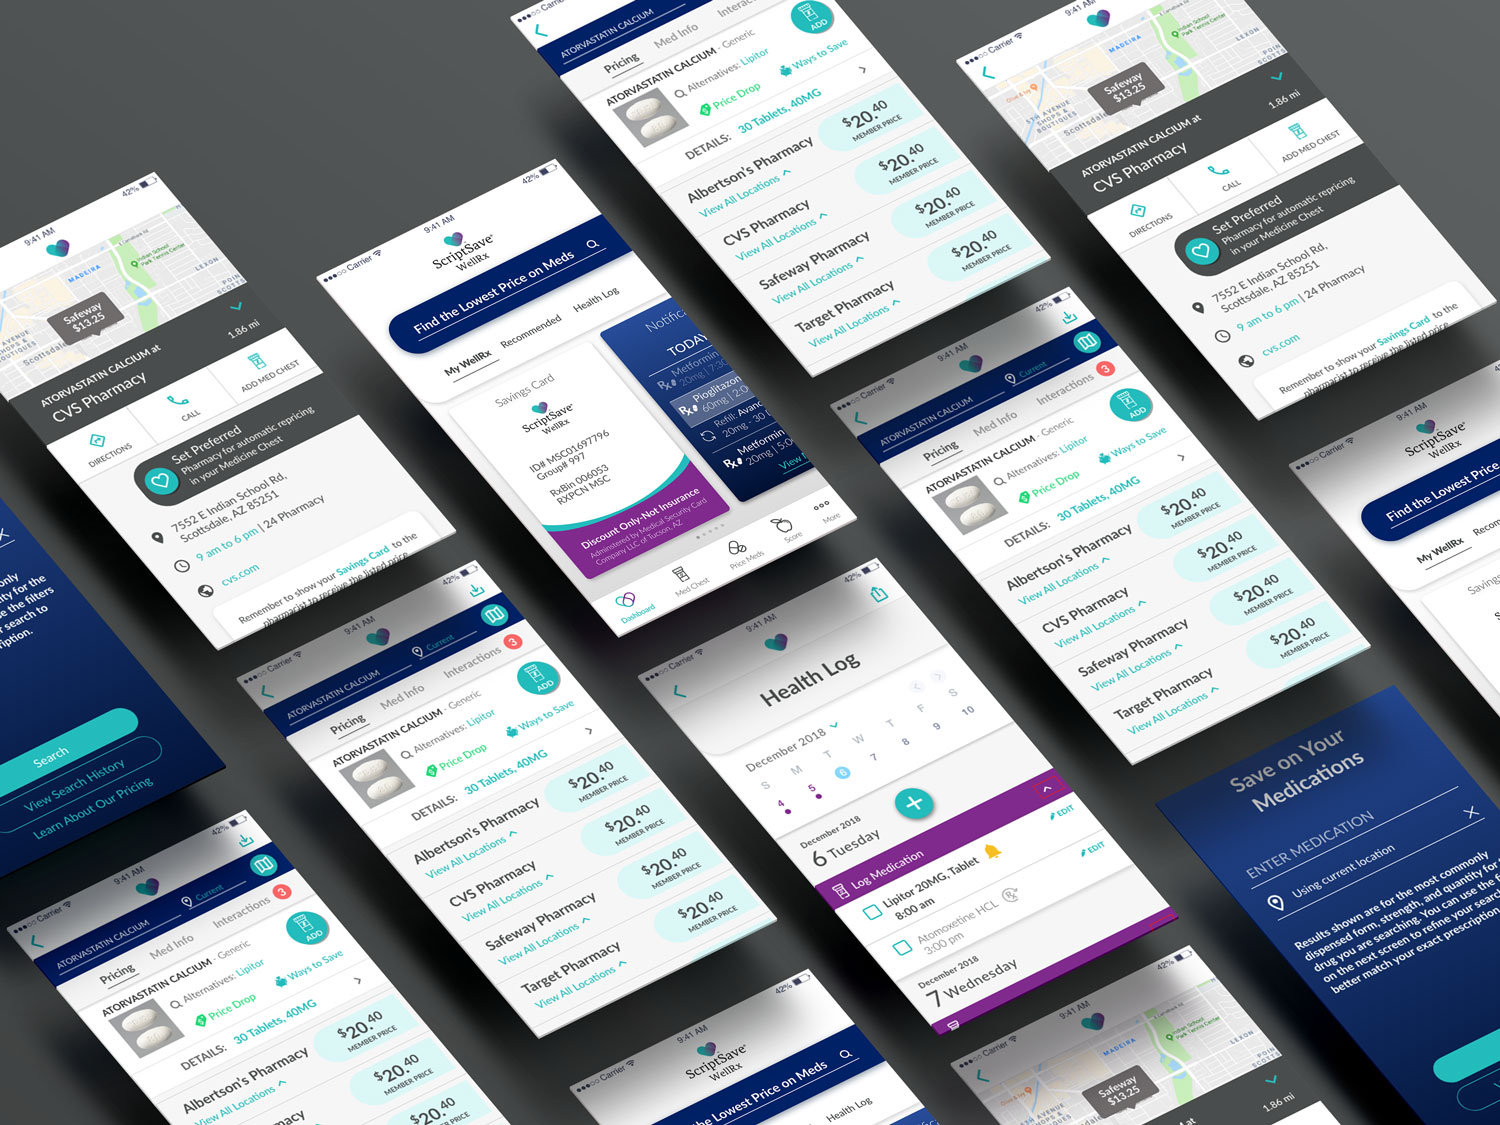 WellRX Mobile App Design - ScriptSave 2019 | Xamarin Mobile App - Product DesignLead UX, Ideation & product design. Discovery + 4 releases.